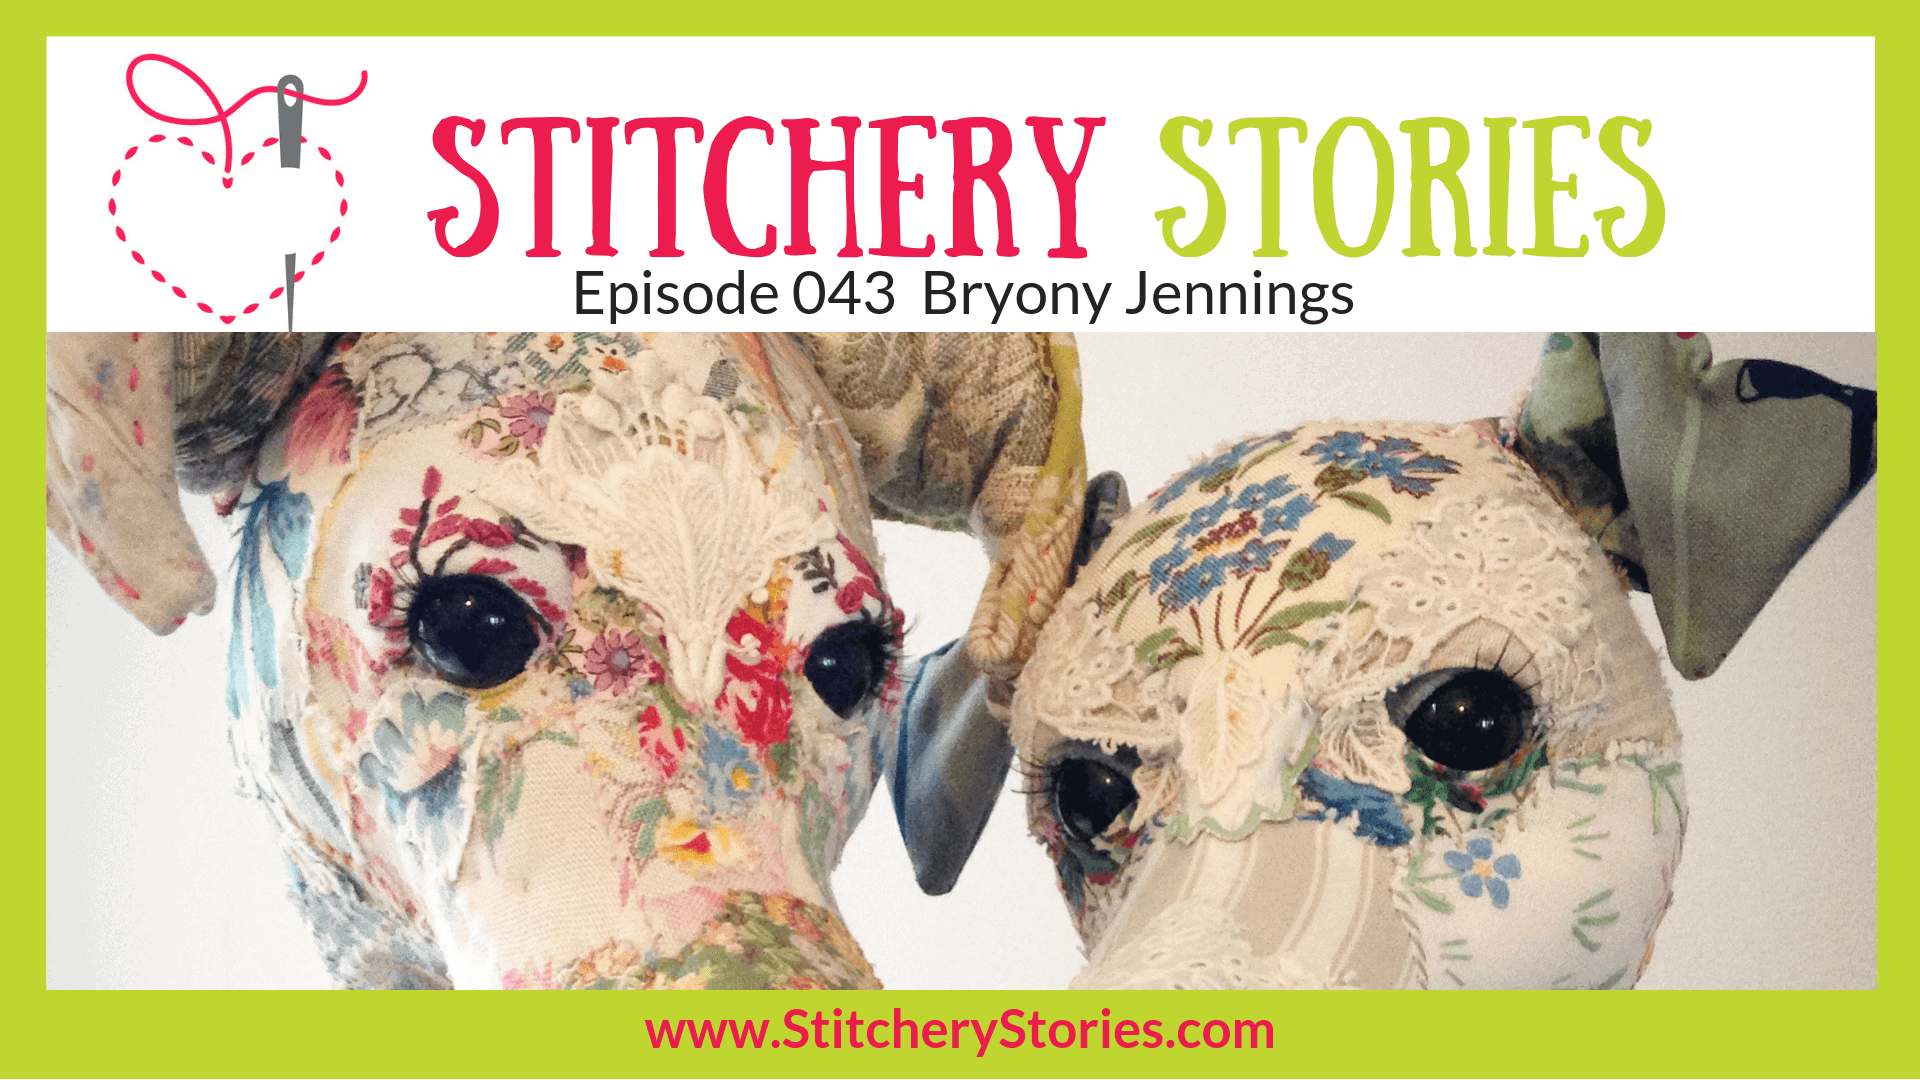 Bryony Jennings Textile Artist Stitchery Stories Textile Art Podcast Wide Art